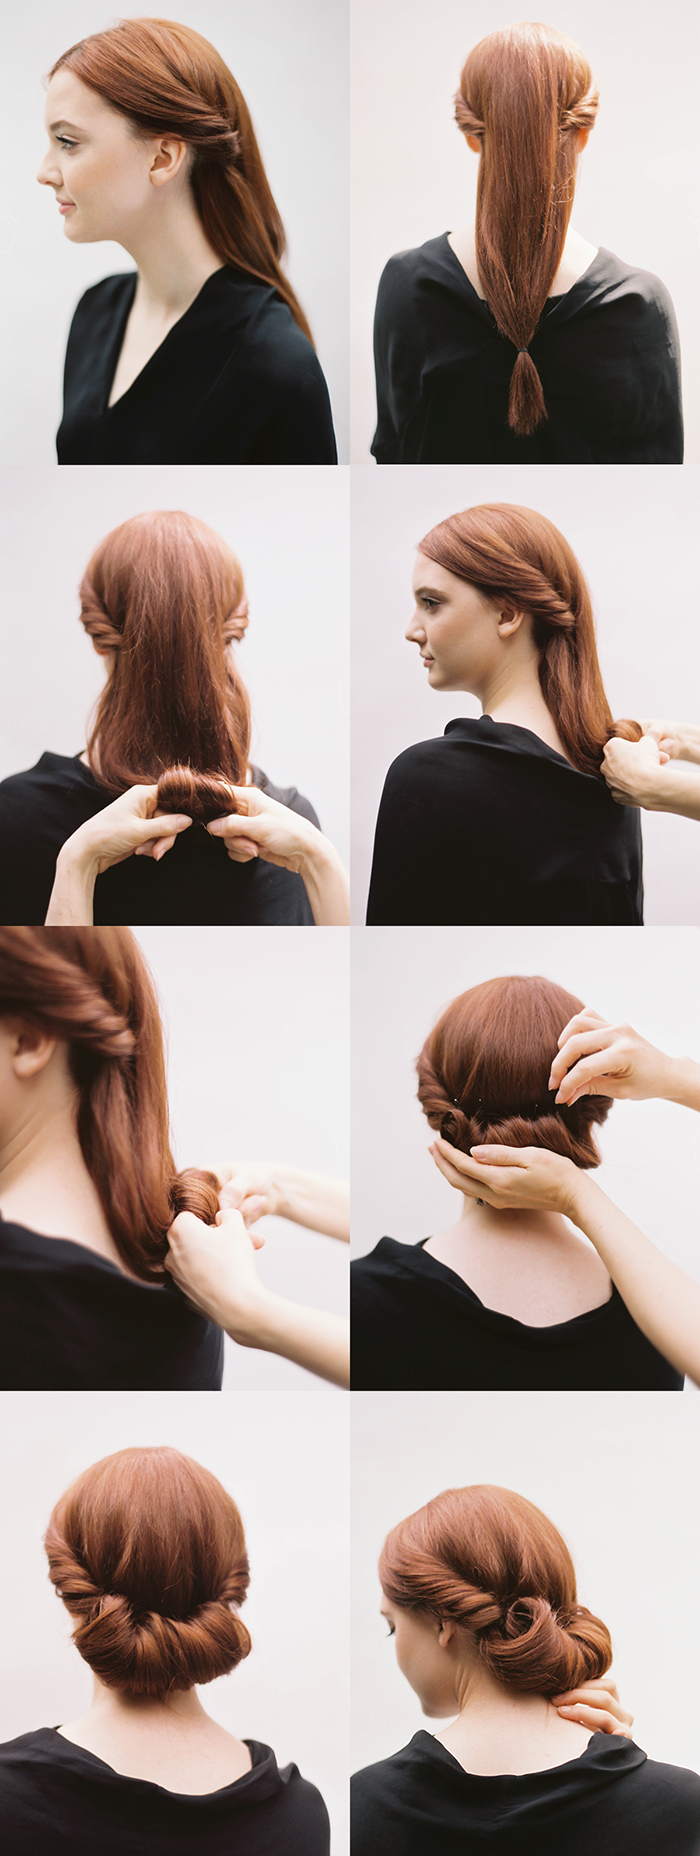 Easy Step-by-Step Hair Tutorials For All Hair Types